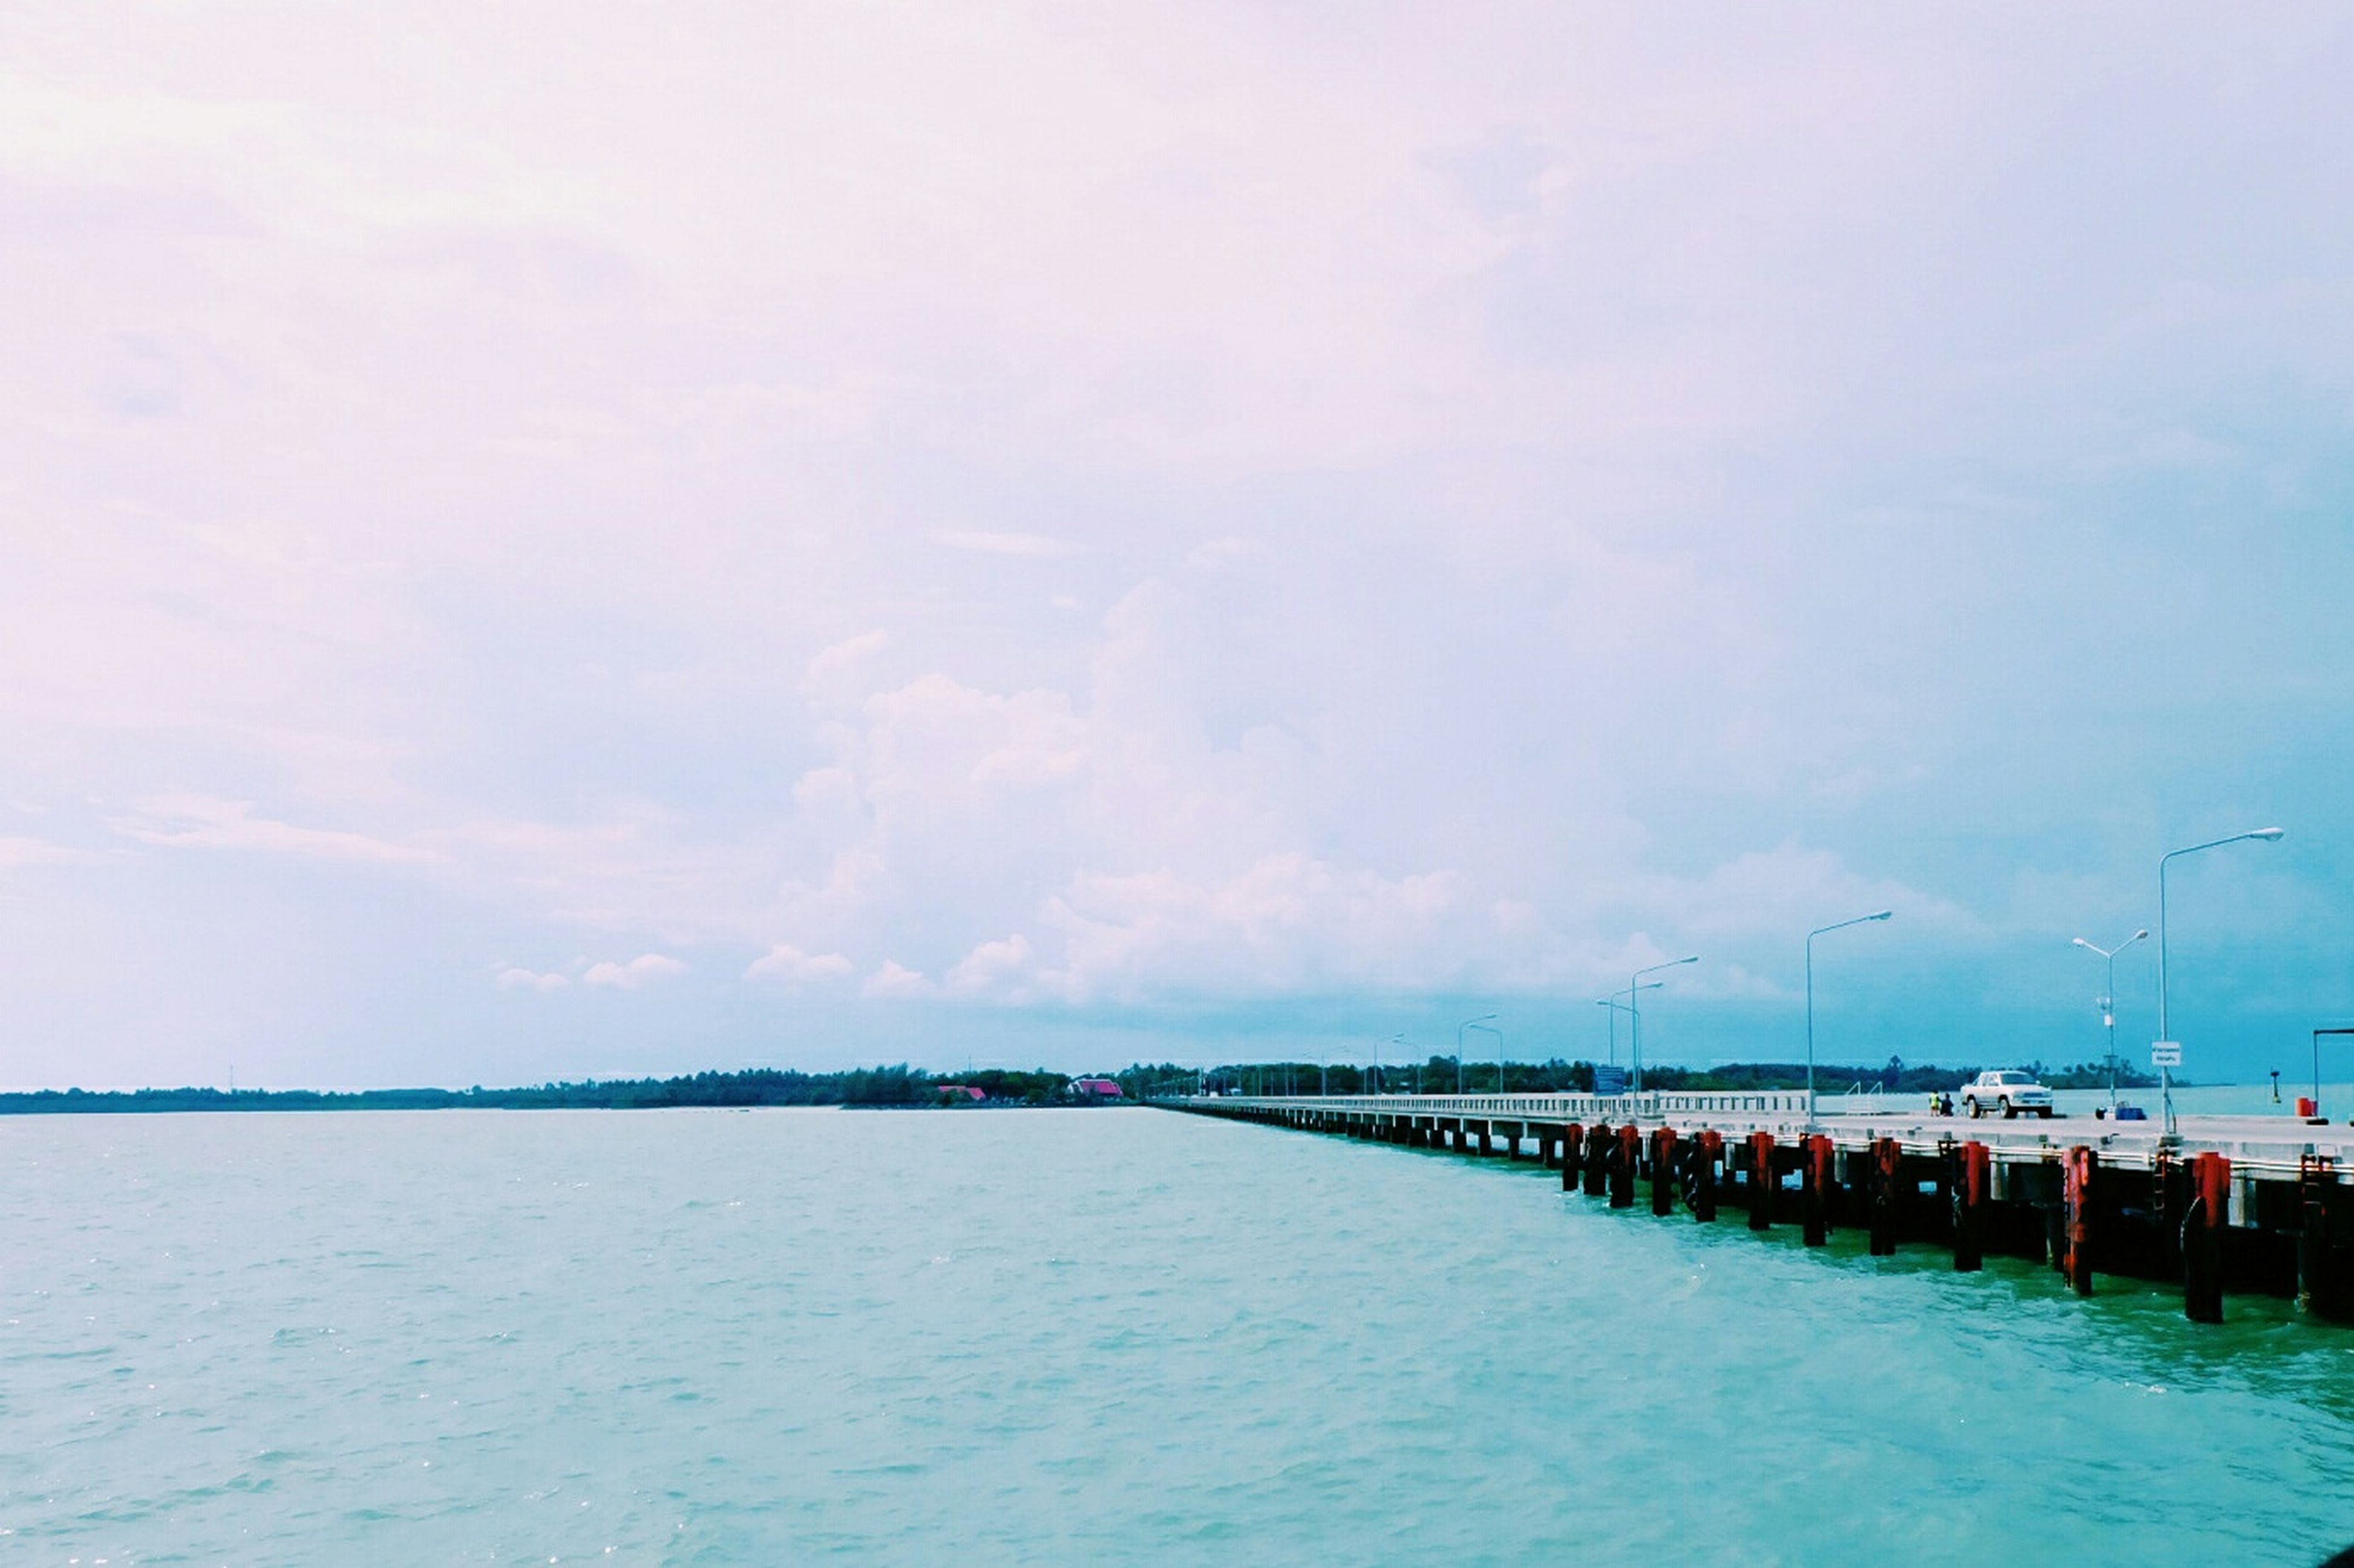 water, sea, sky, tranquil scene, tranquility, waterfront, scenics, beach, cloud - sky, beauty in nature, nature, built structure, horizon over water, pier, cloud, idyllic, cloudy, outdoors, day, blue